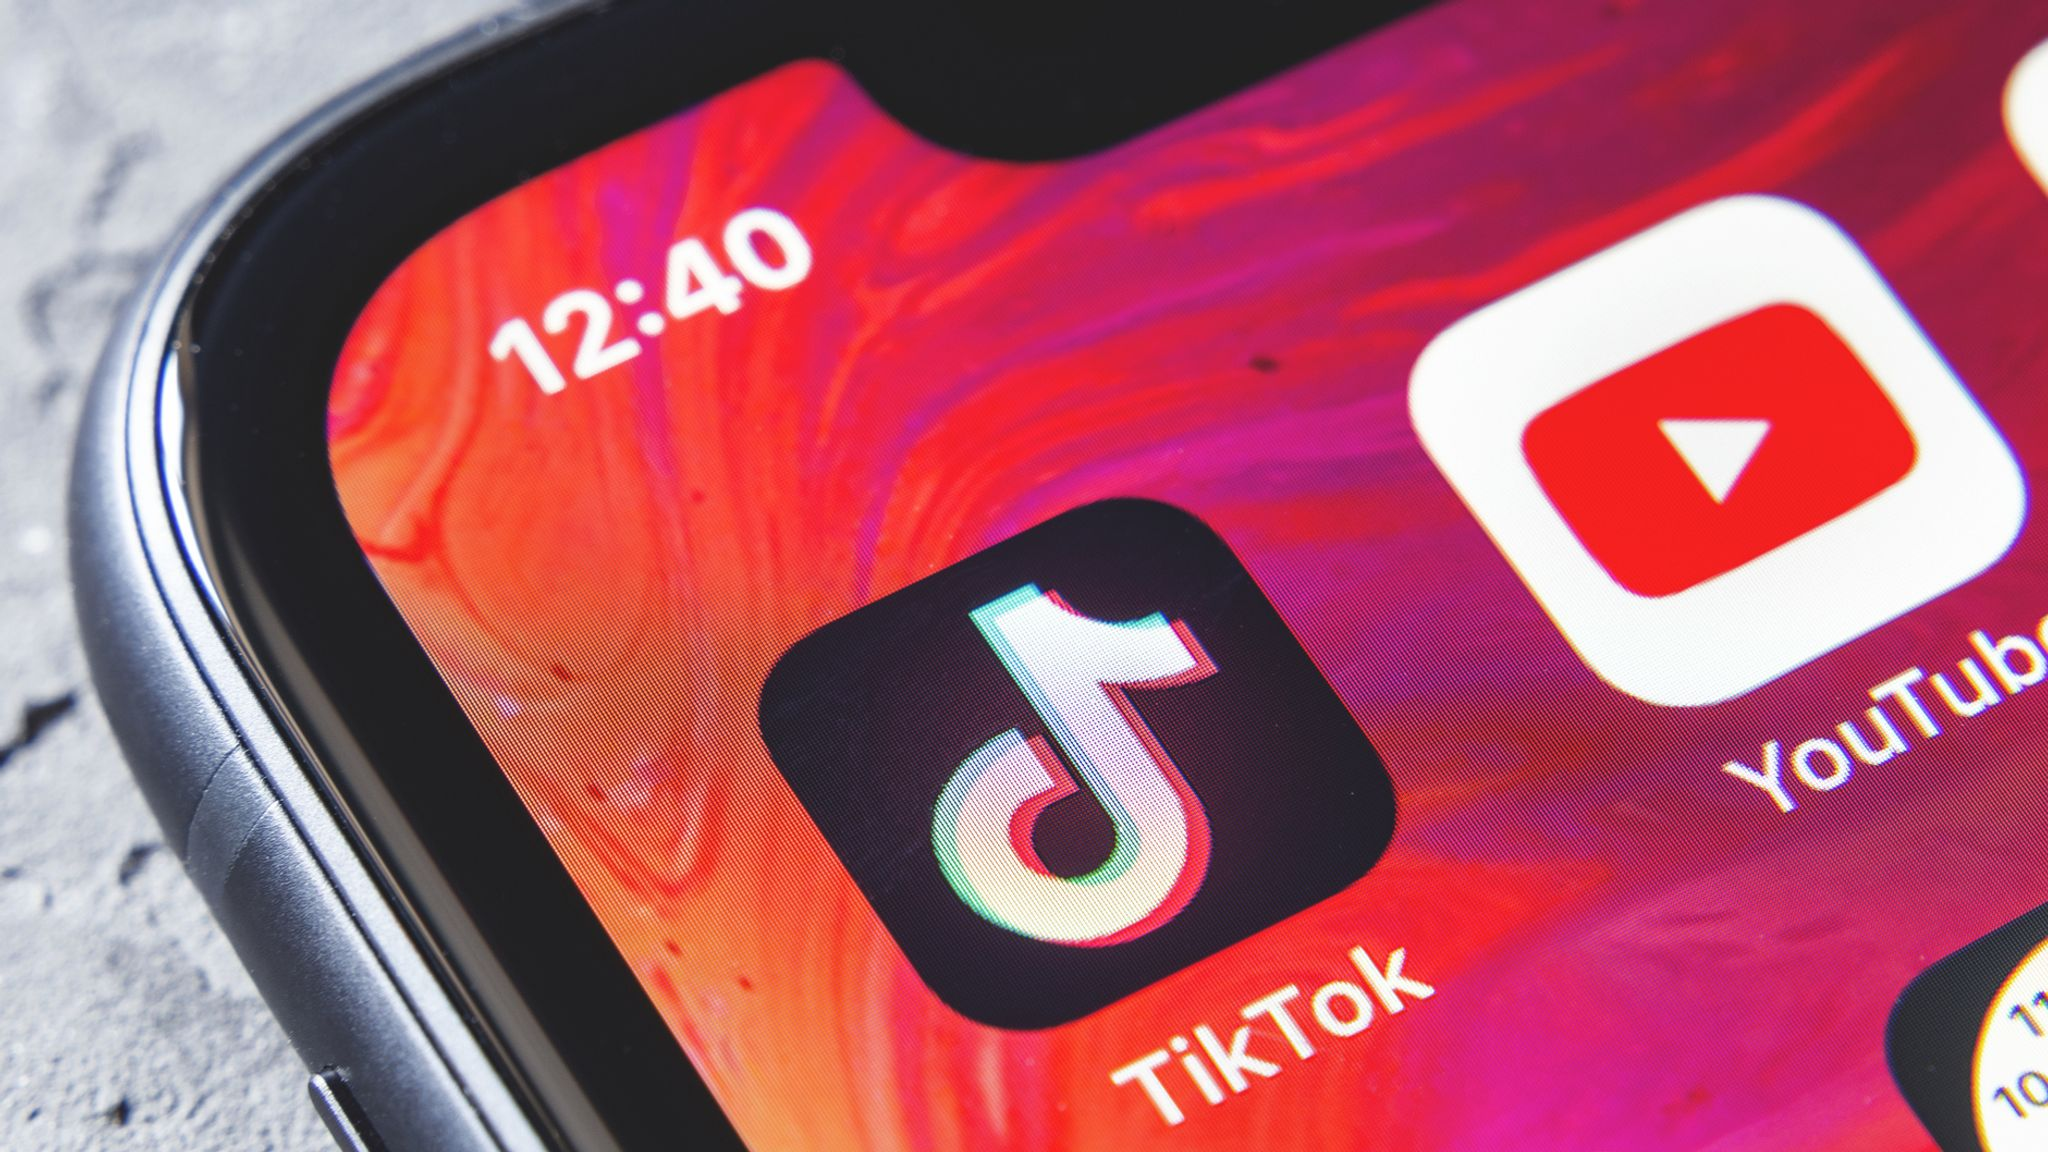 Tiktok Cambridgeshire Police Officers Warned Over Unprofessional And Offensive Videos Uk News Sky News